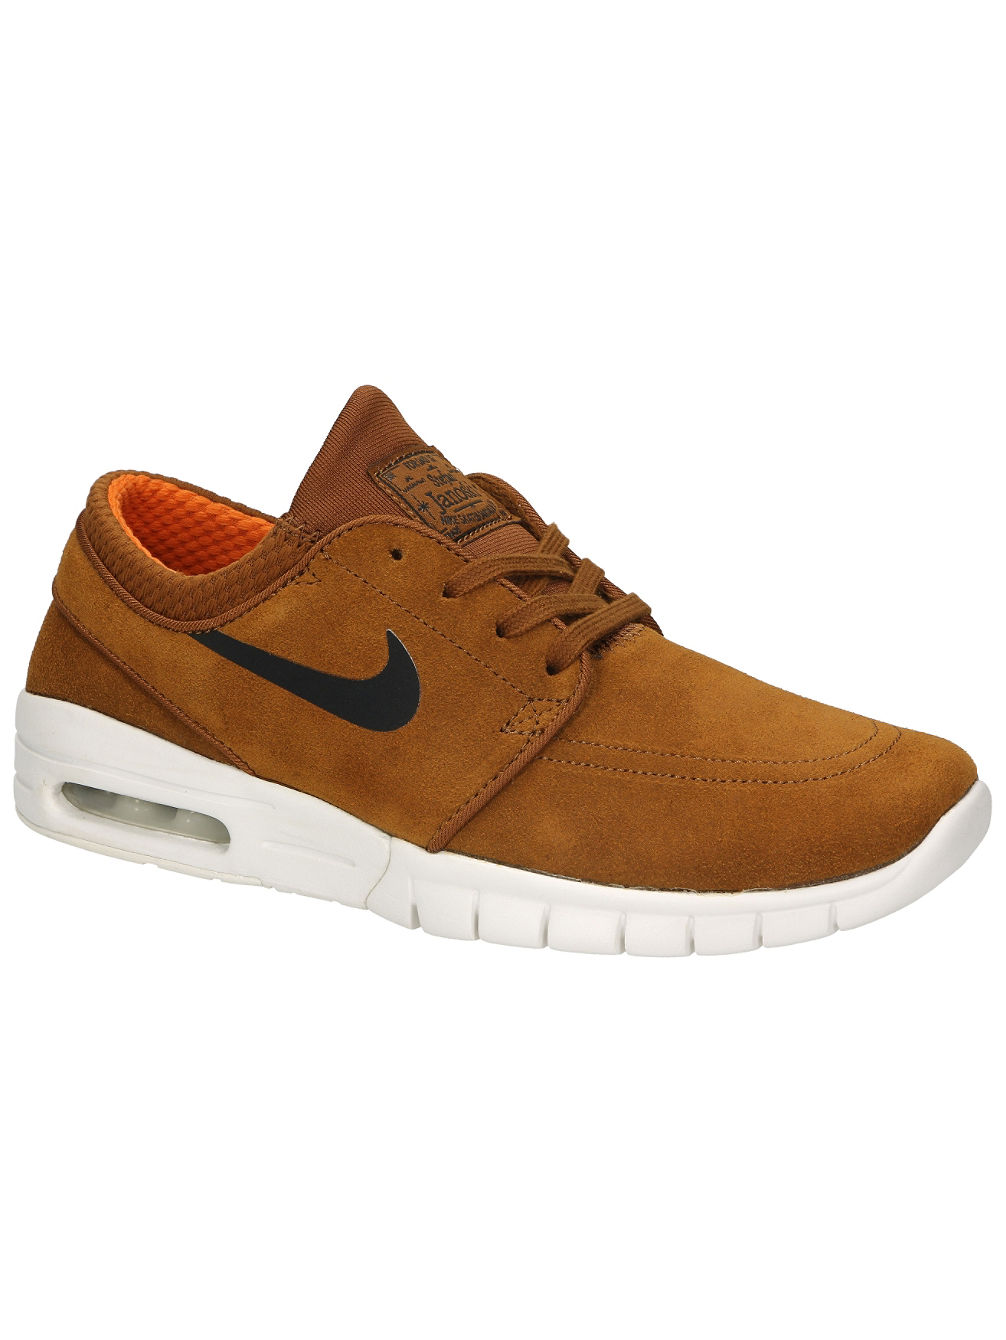 online store 537bf c561f Stefan Janoski Max Leather Sneakers. Nike